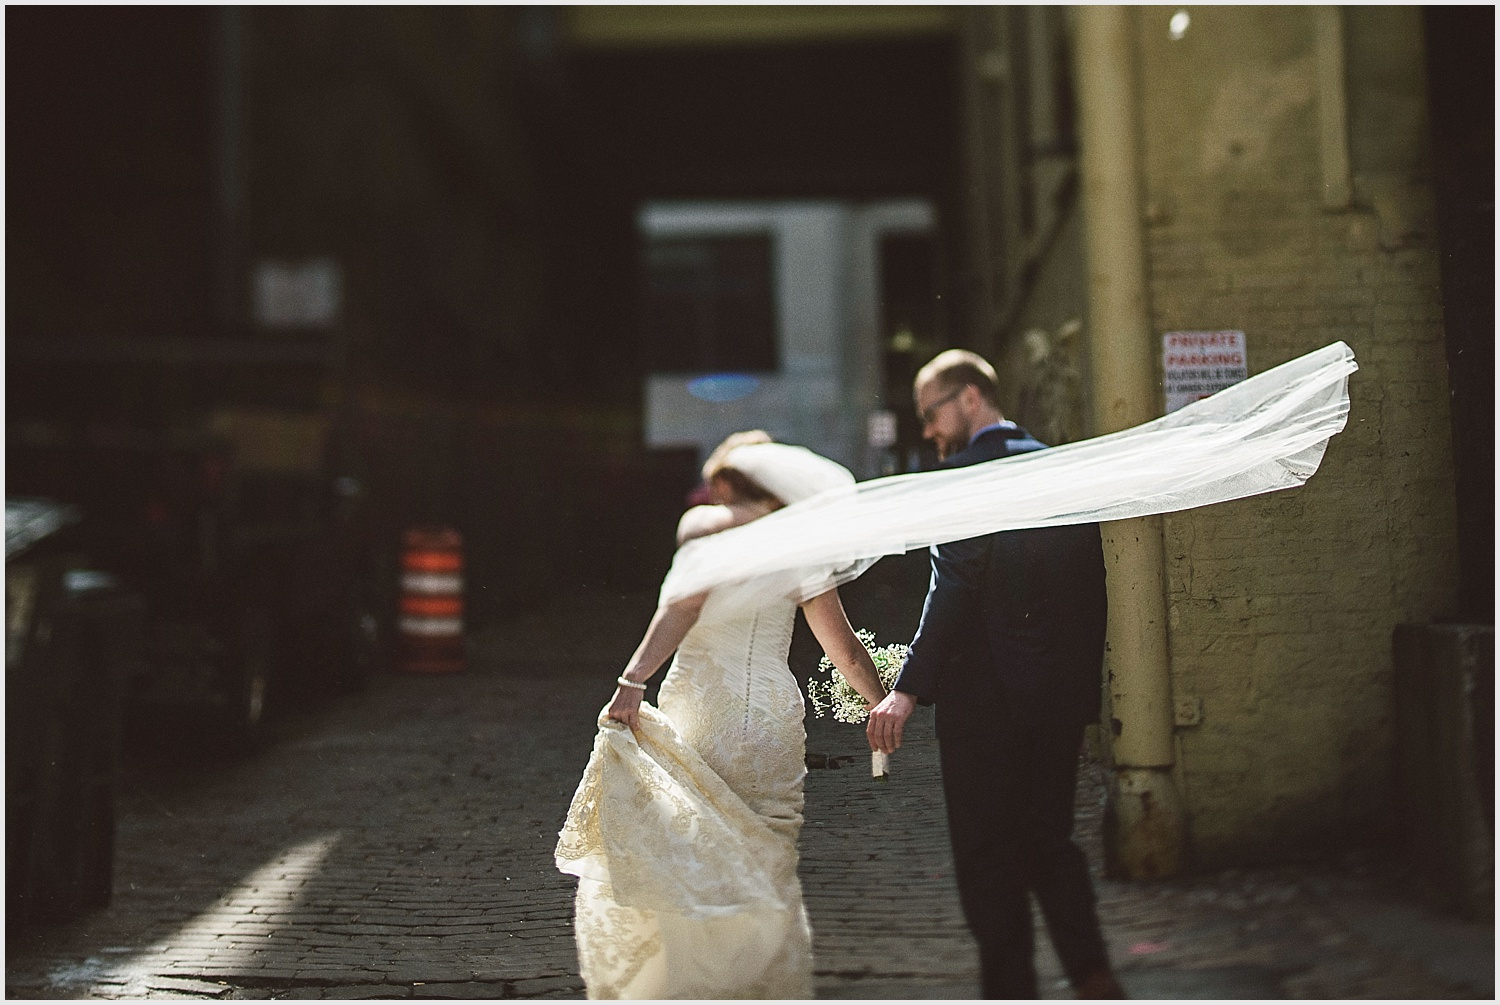 stpaul_wedding_lucas_botz_photography_016.jpg